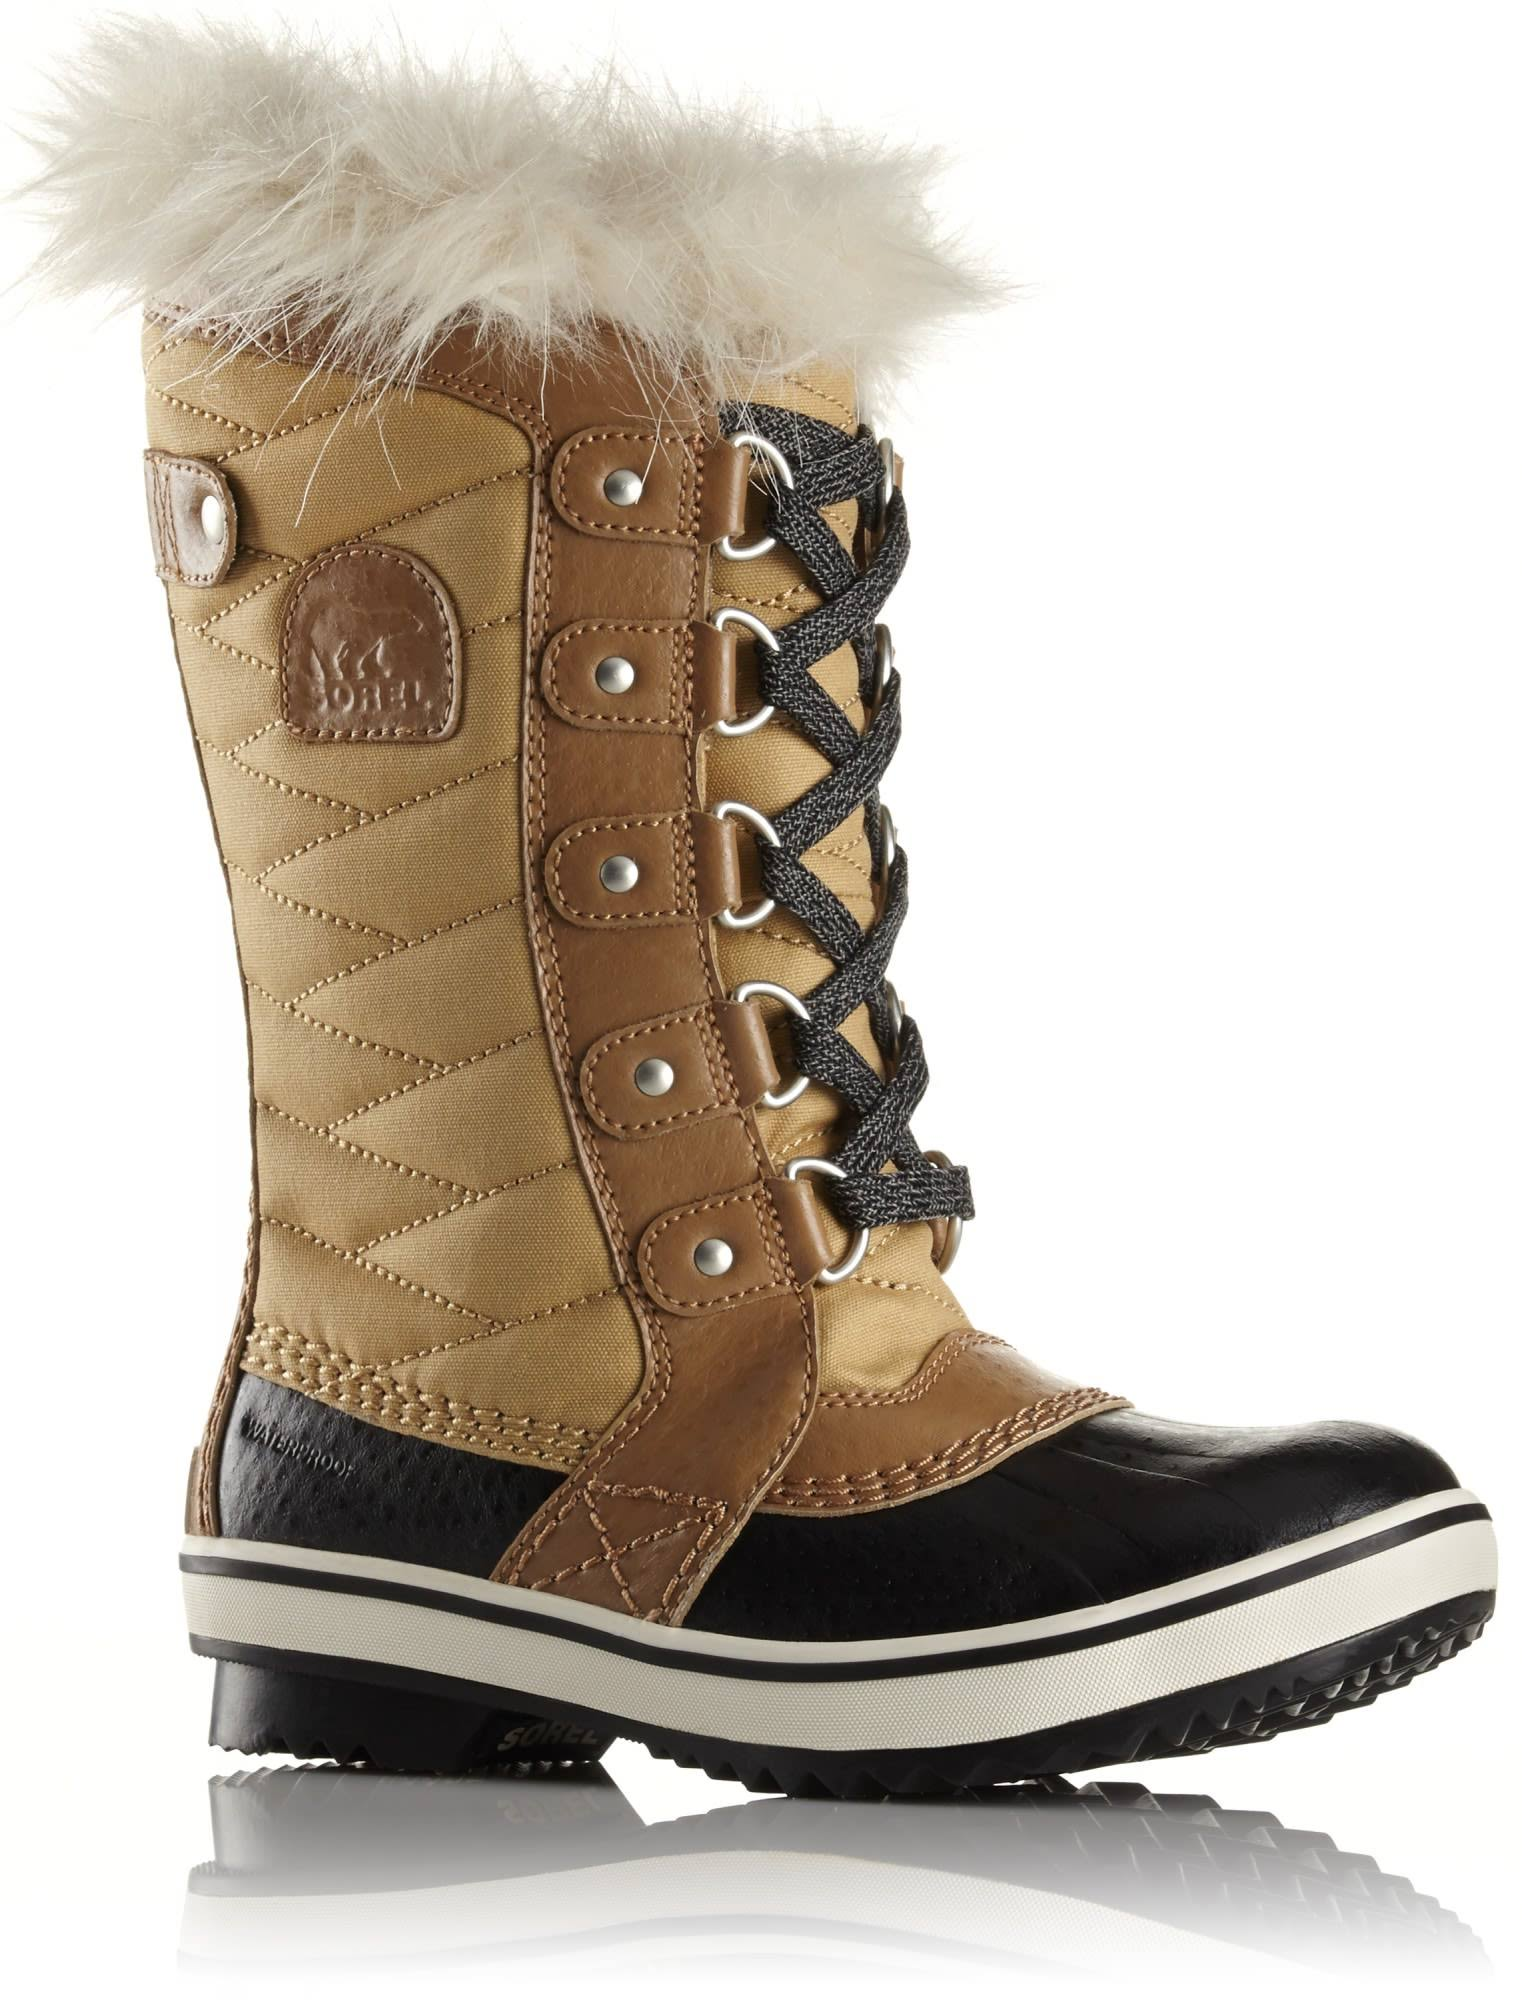 Sorel Girls Tofino II Waterproof Winter Boot - Curry, 2 US Big Kid